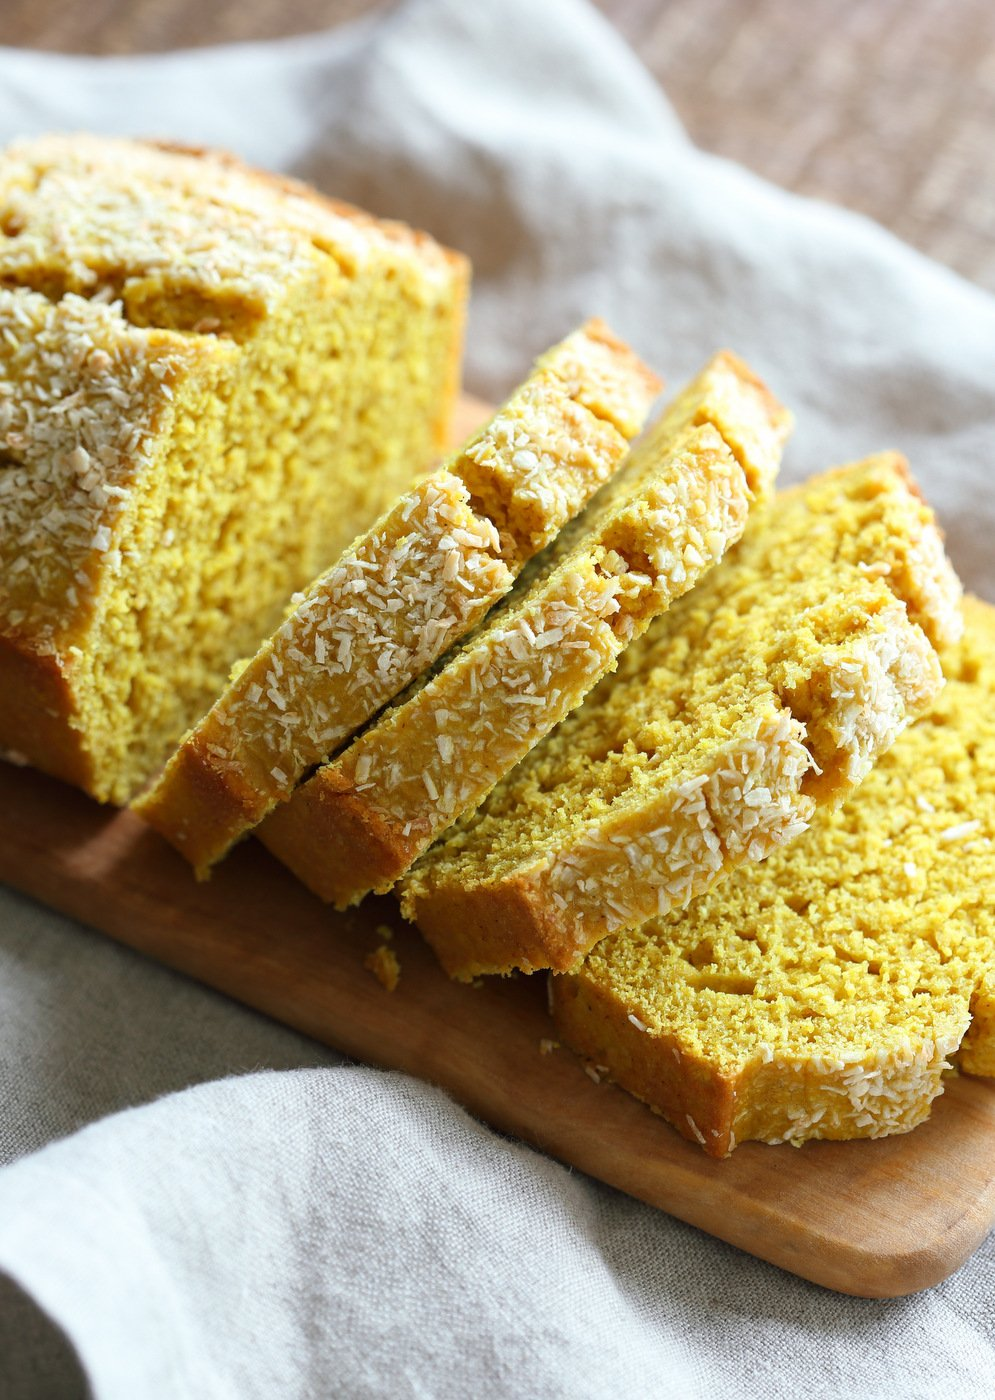 Coconut Turmeric Bread Golden Lemon Coconut Loaf Vegan